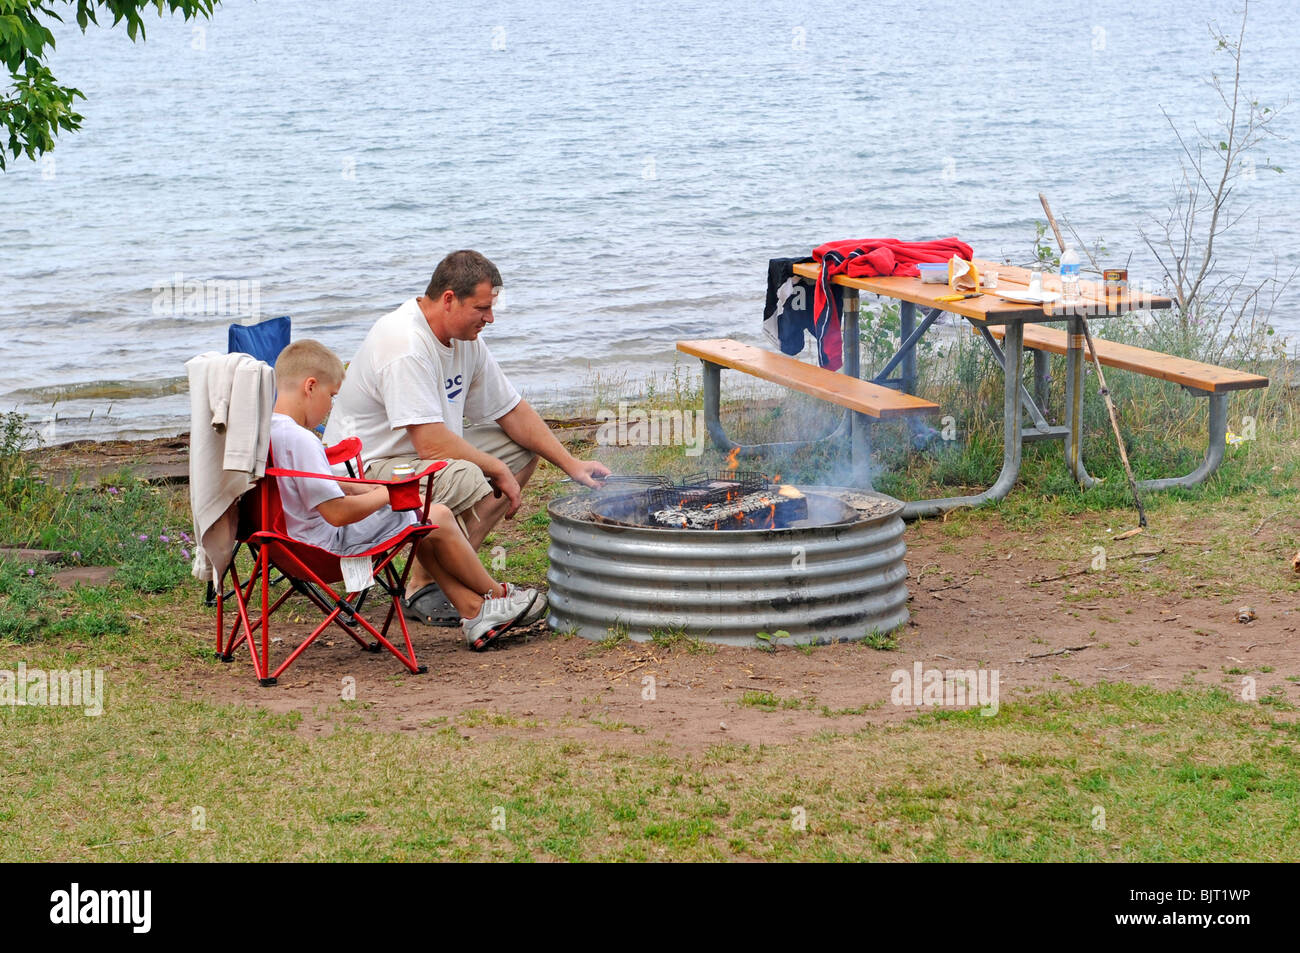 Camping on Lake Superior at Porcupine Mountains Wilderness